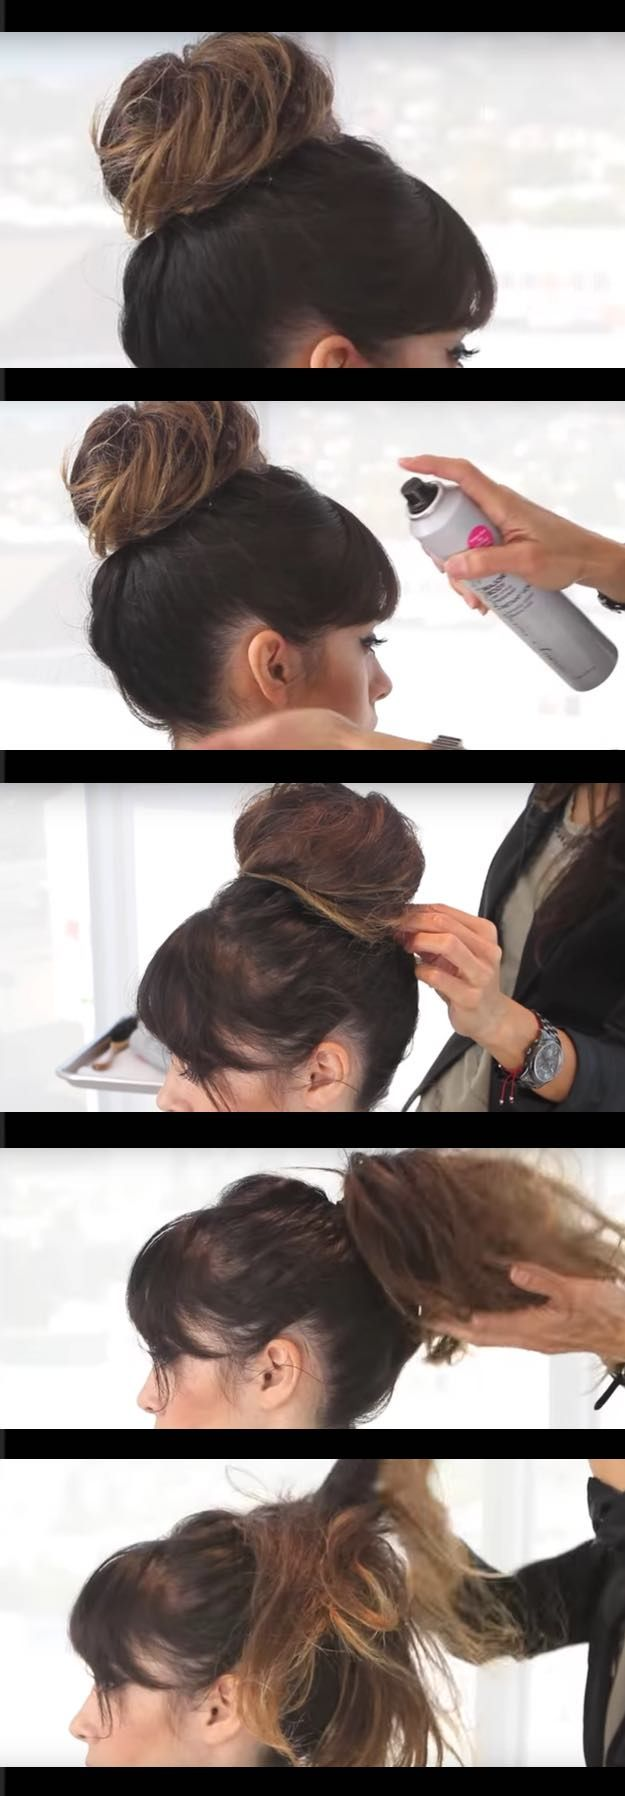 Quick and Easy Updo Hairstyles - How to Do a Quick and Easy Updo for Parties - Hair Hacks And Popular Haircuts For The Lazy Girl. Hairdos and Up Dos Including The Half Up, Chignons, Twists, Beauty Tips, and DIY Tutorial Videos For Bangs, Products, Curls, The Top Knot, Coiffures, and Shoulder Length Hair - https://thegoddess.com/quick-easy-updo-hairstyles